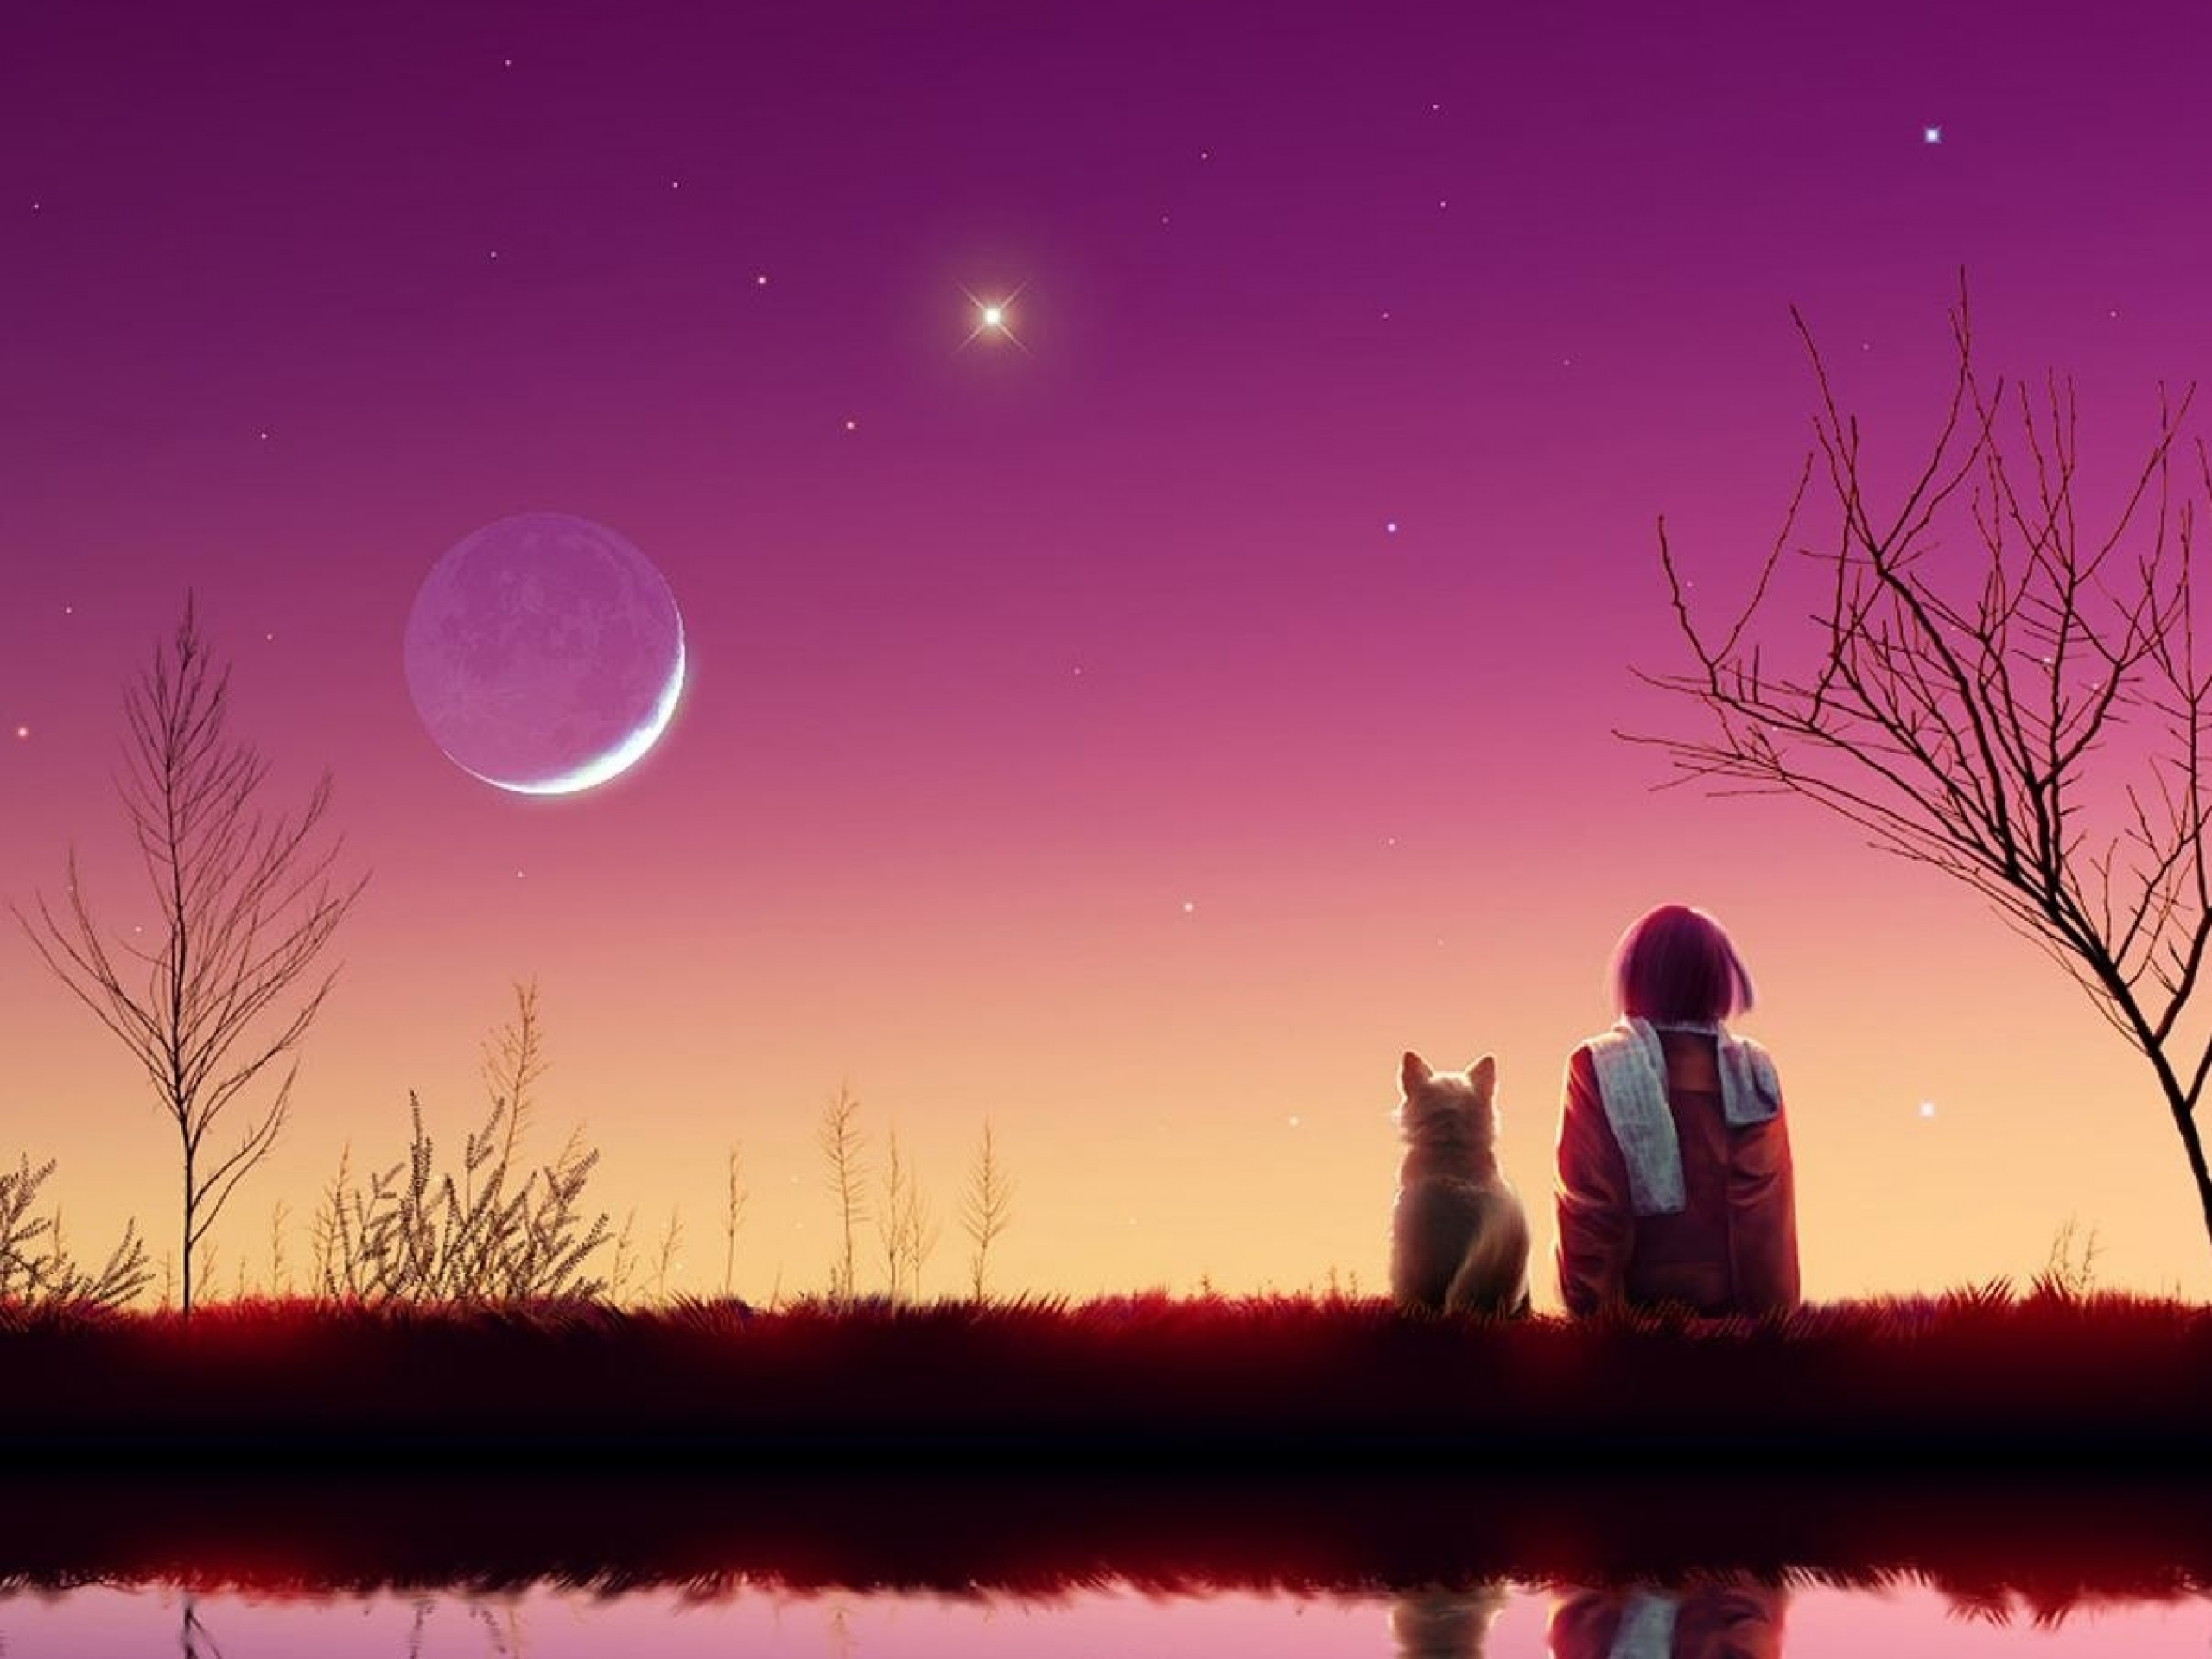 Animated Peacock Wallpapers Child Dog Pink Sky Lake Wallpapers Child Dog Pink Sky